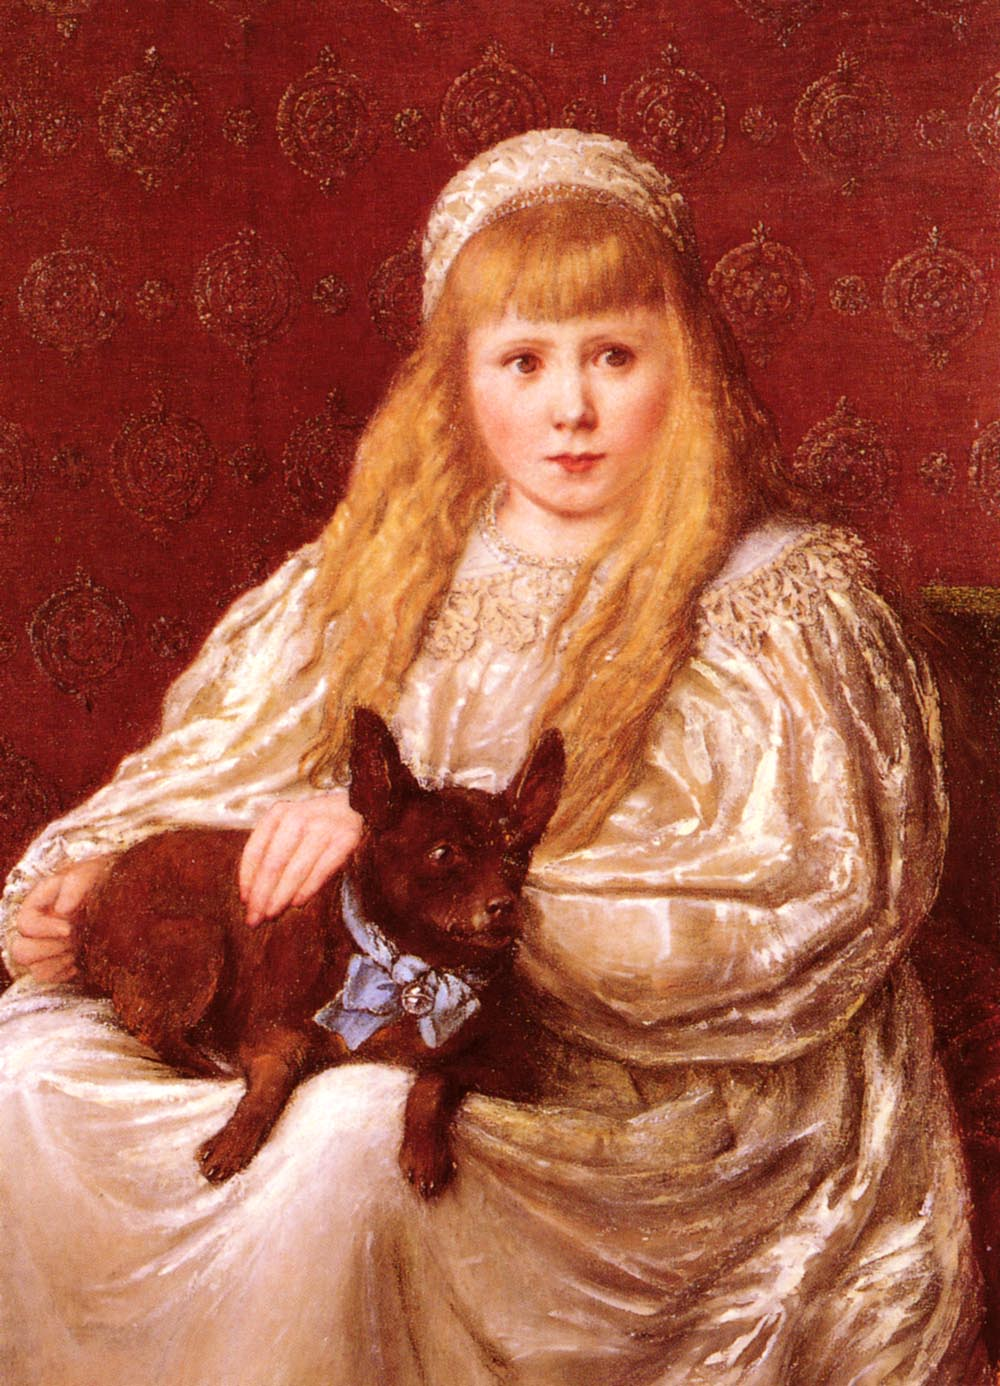 The Blue Ribbon :: Charlotte Major Wyllie - Portraits of young girls in art and painting ôîòî